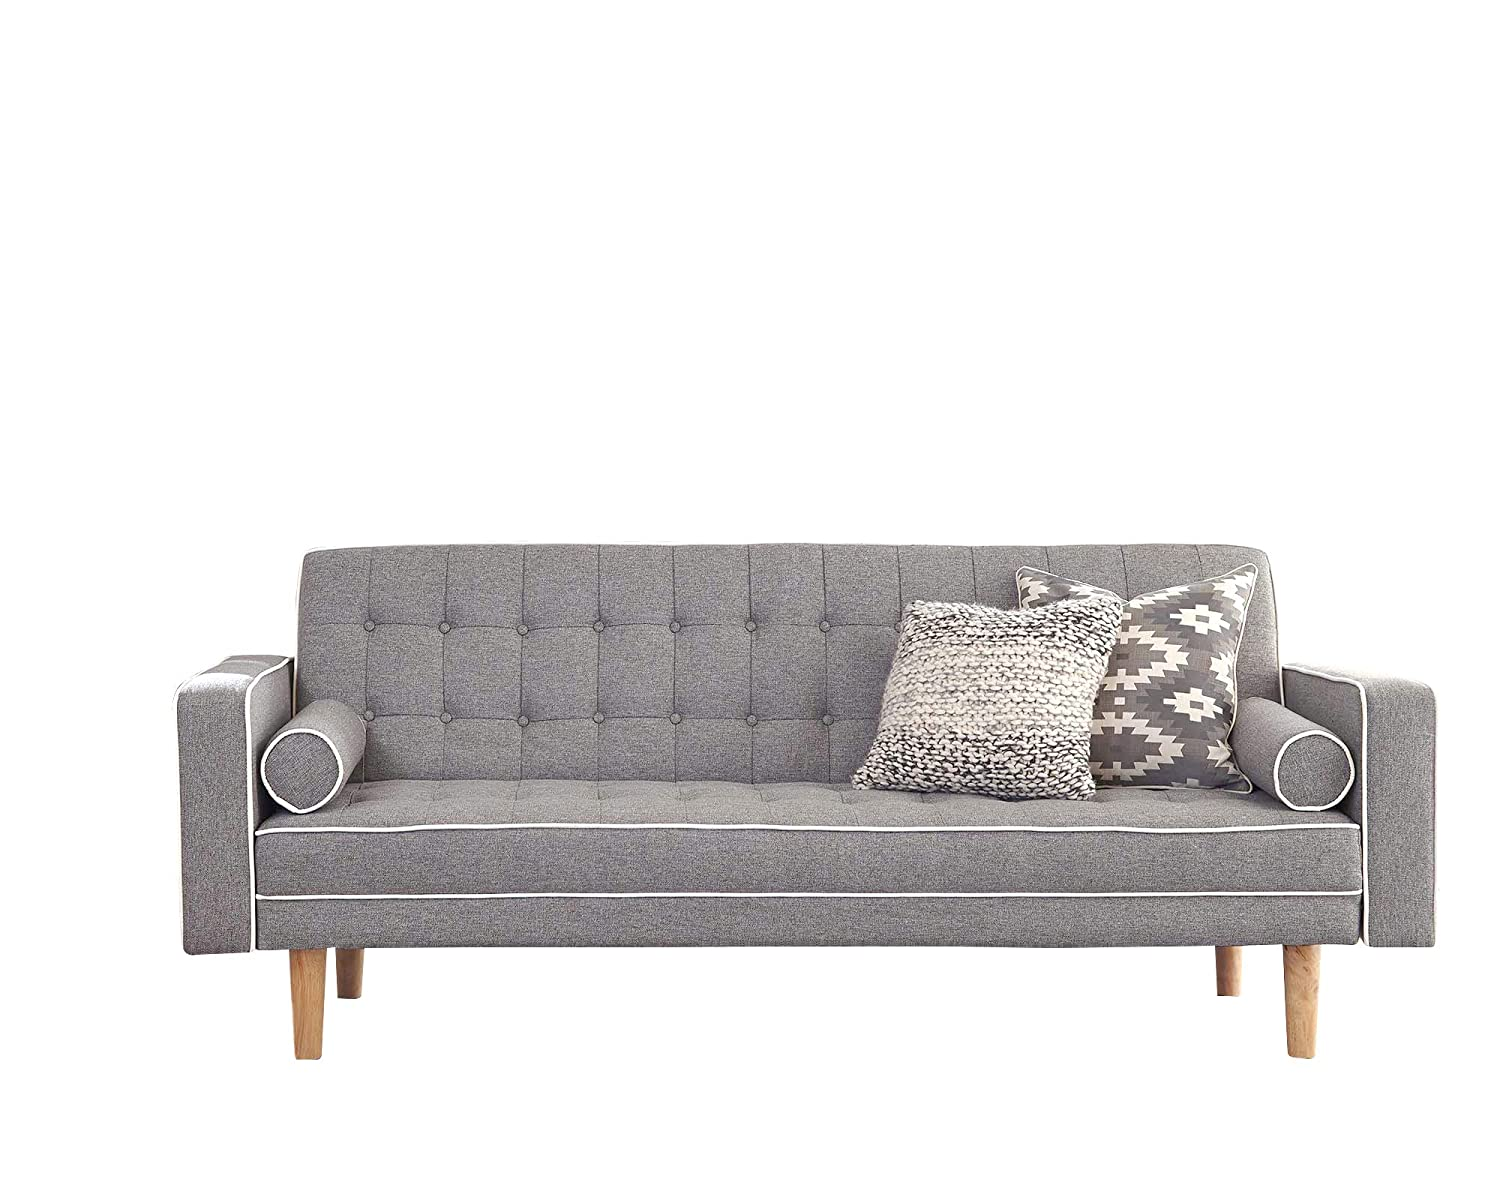 Amazon.com: Scott Living Luske Fabric Sofa Bed with Accent ...